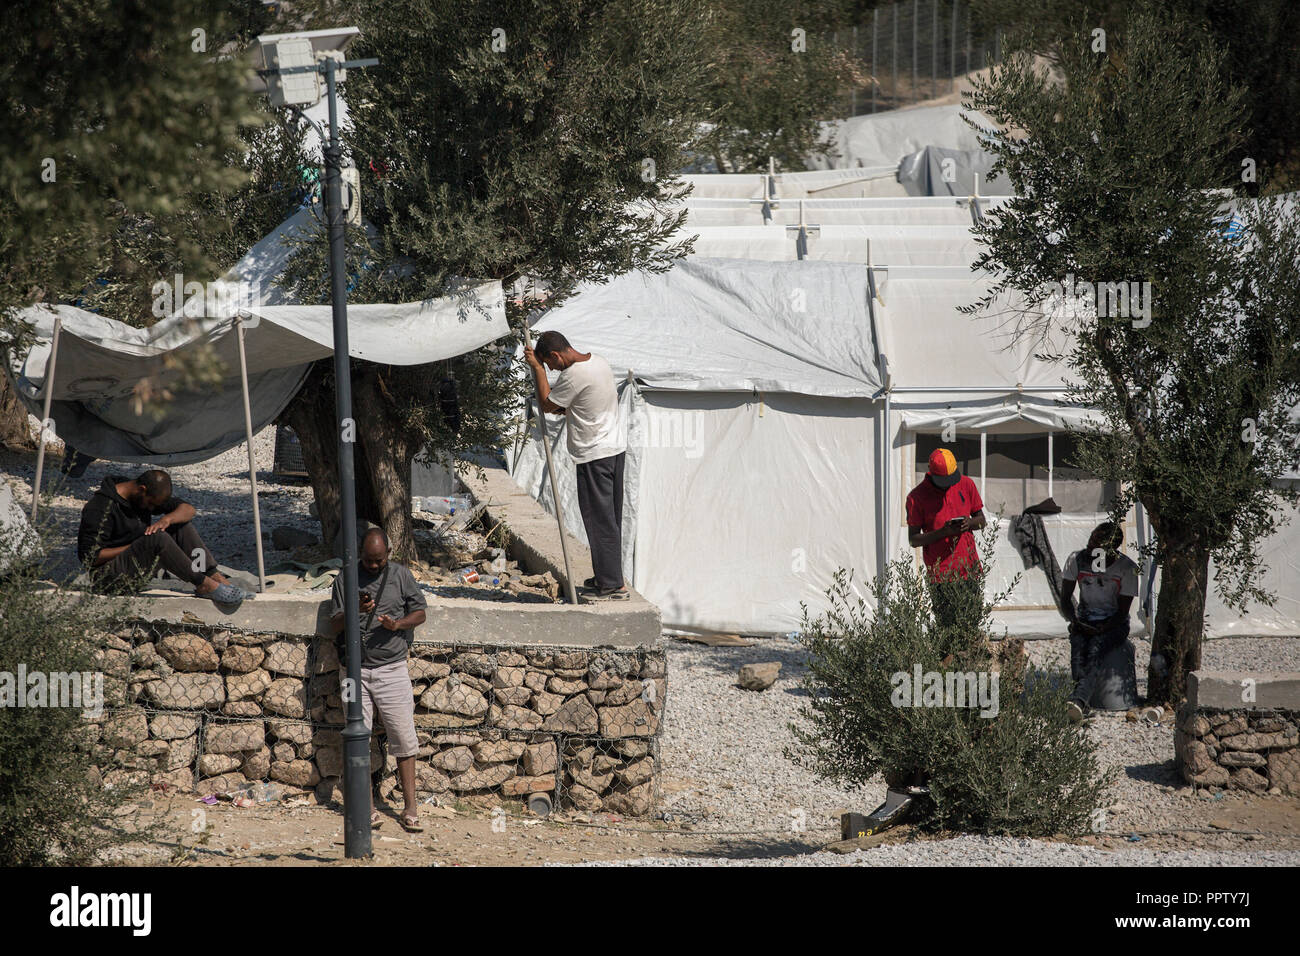 Moira, Greece. 24th Sep, 2018. Refugees and migrants in a temporary camp next to the refugee camp Moria. Credit: Socrates Baltagiannis/dpa/Alamy Live News - Stock Image